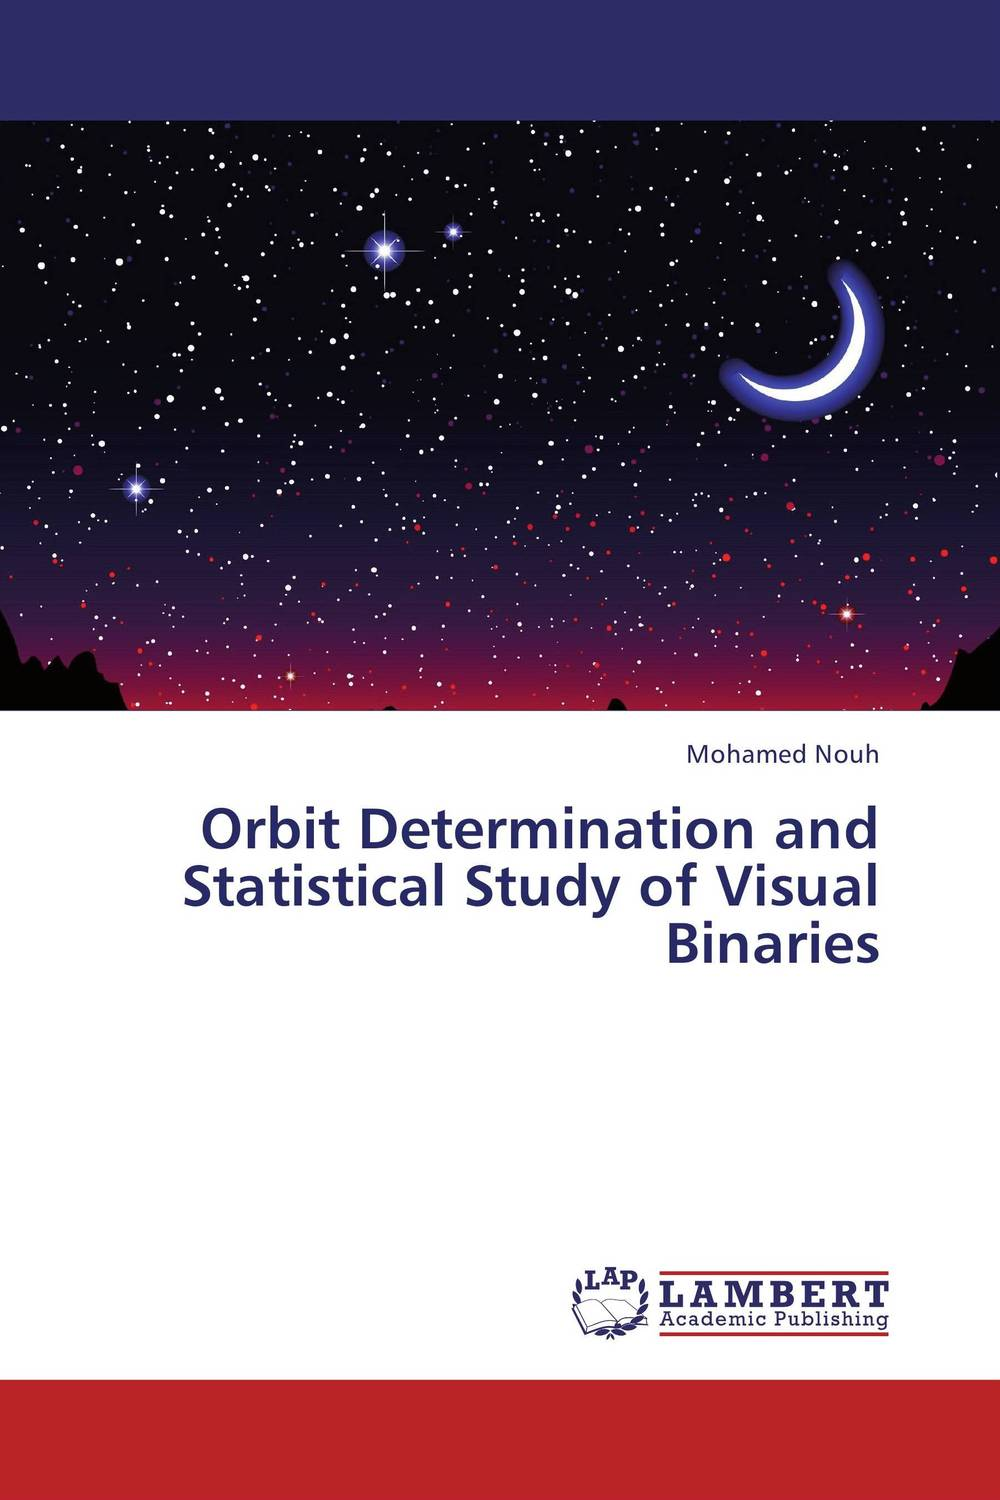 Orbit Determination and Statistical Study of Visual Binaries